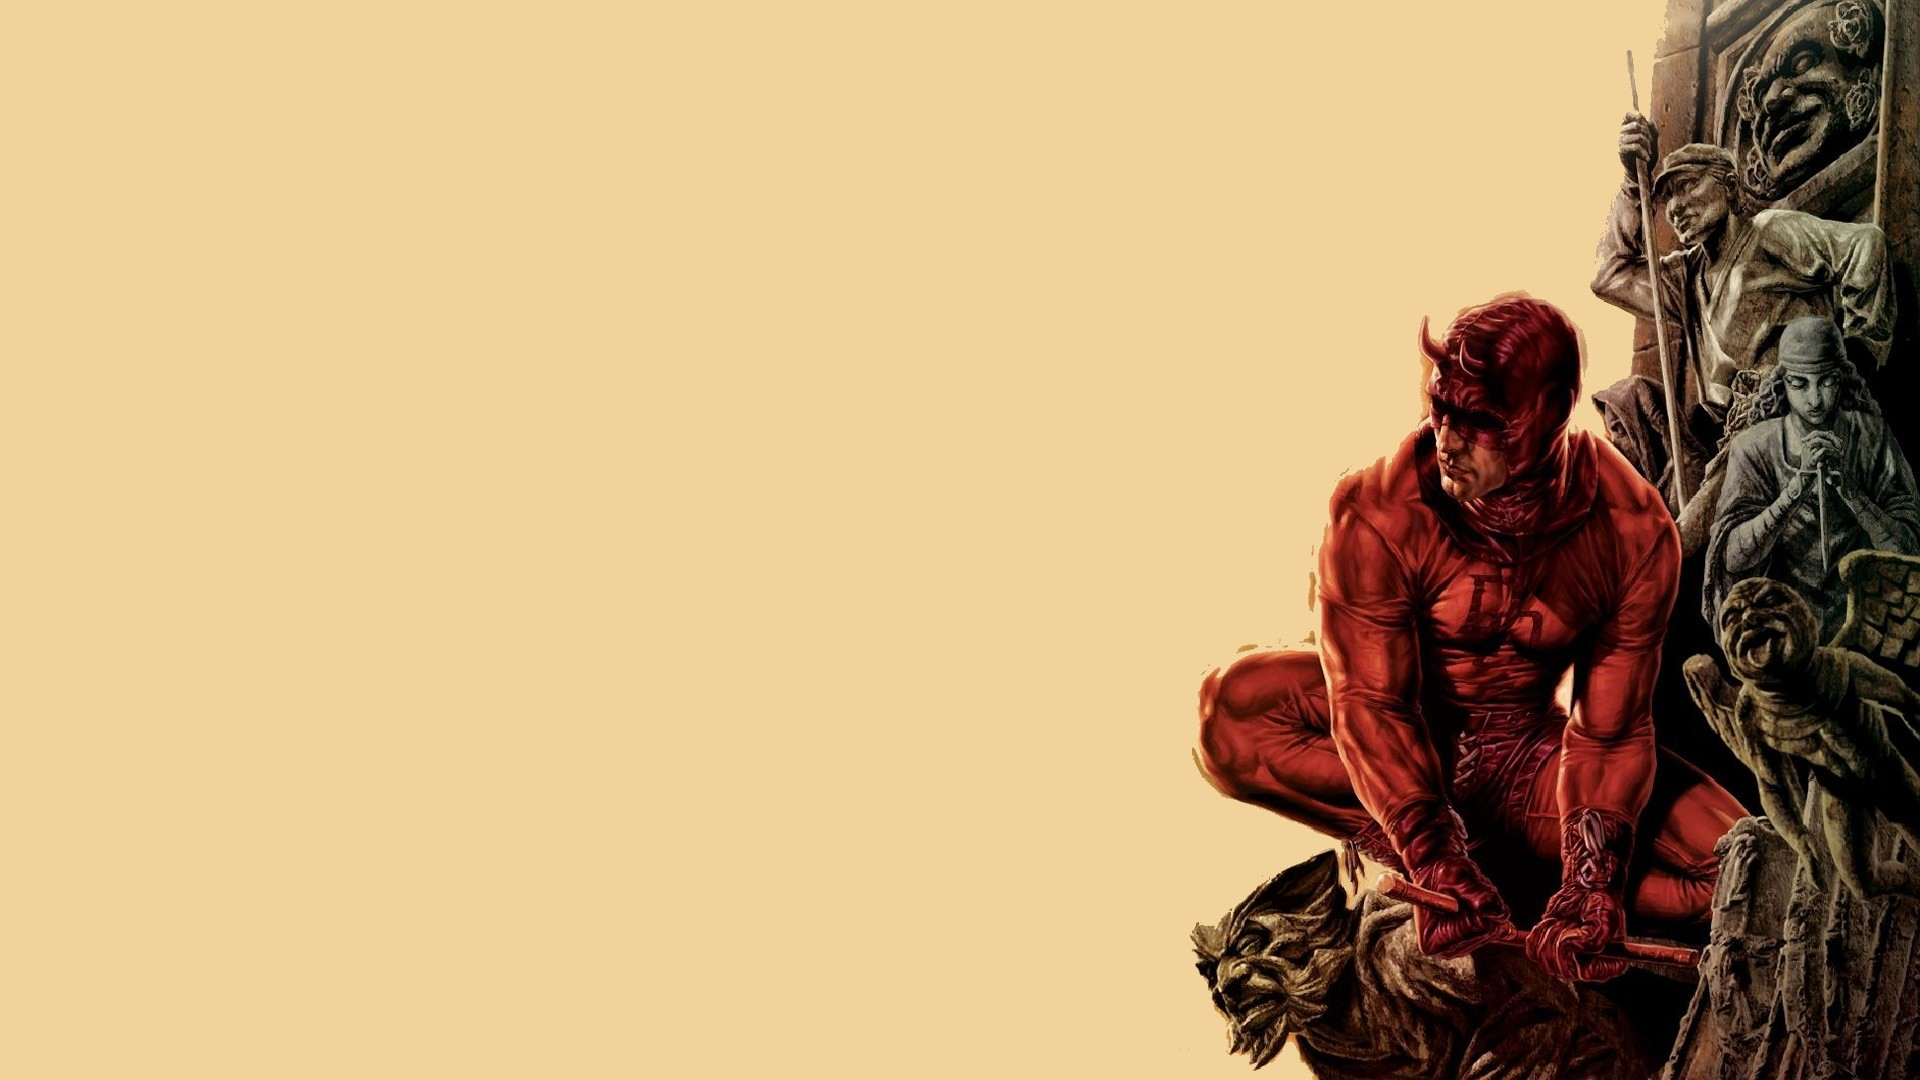 Res: 1920x1080, Daredevil Wallpapers Wide